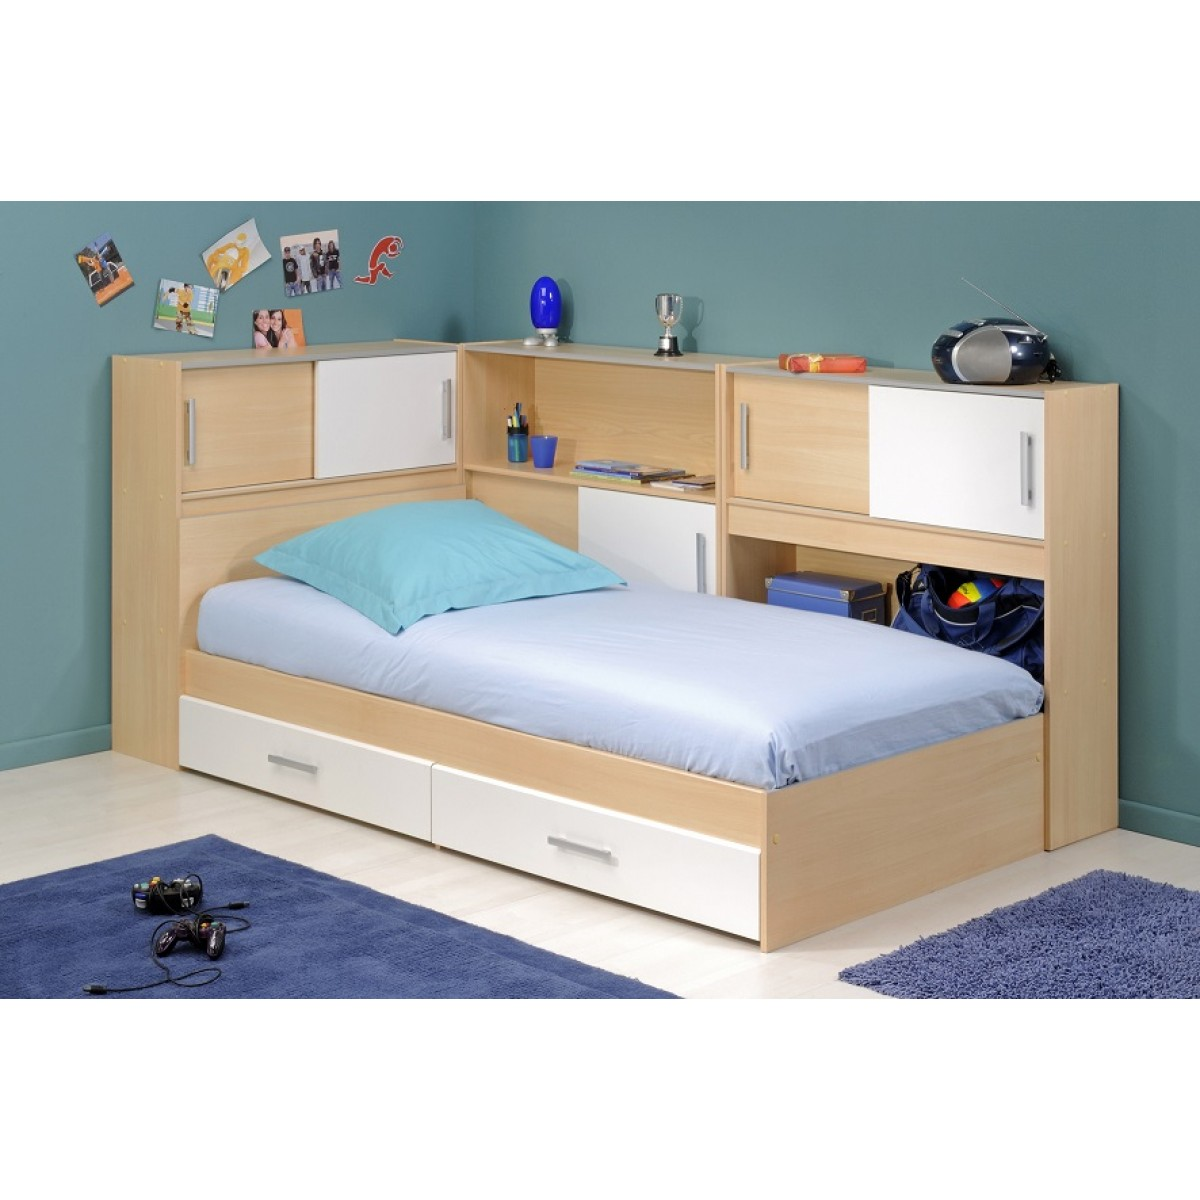 terre lit enfant combin 90x190 nolan de nuit. Black Bedroom Furniture Sets. Home Design Ideas